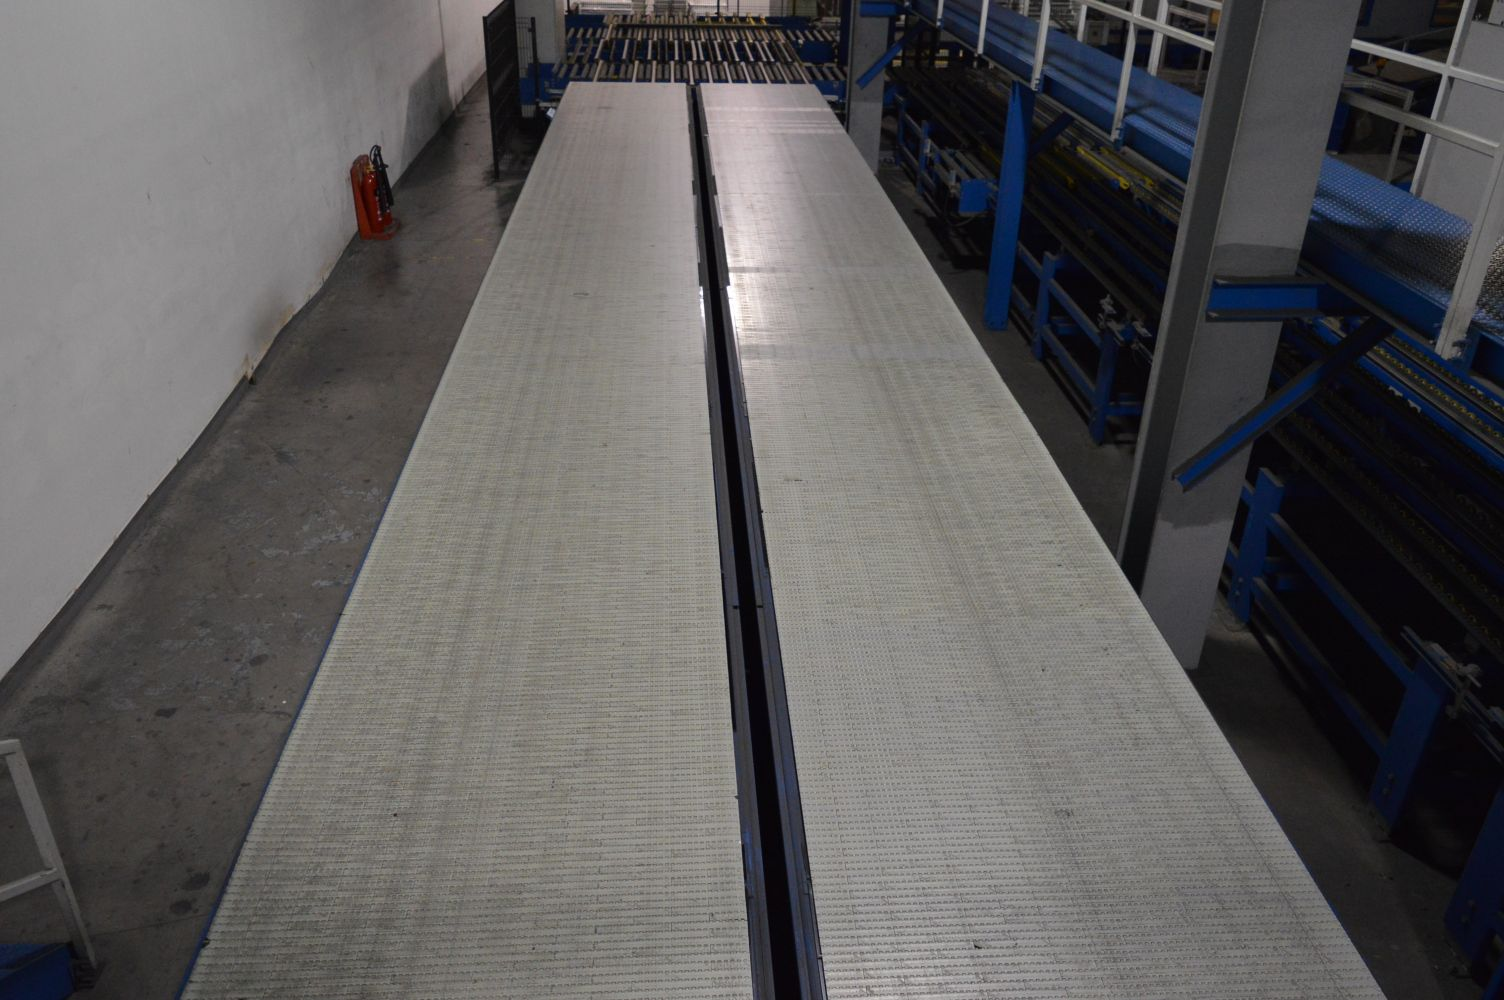 KRAFT AUTOMATIC PALLETISING PLANT; LIFTING & WAREHOUSE EQUIPMENT (QUINN RADIATORS LIMITED - IN ADMINISTRATION)